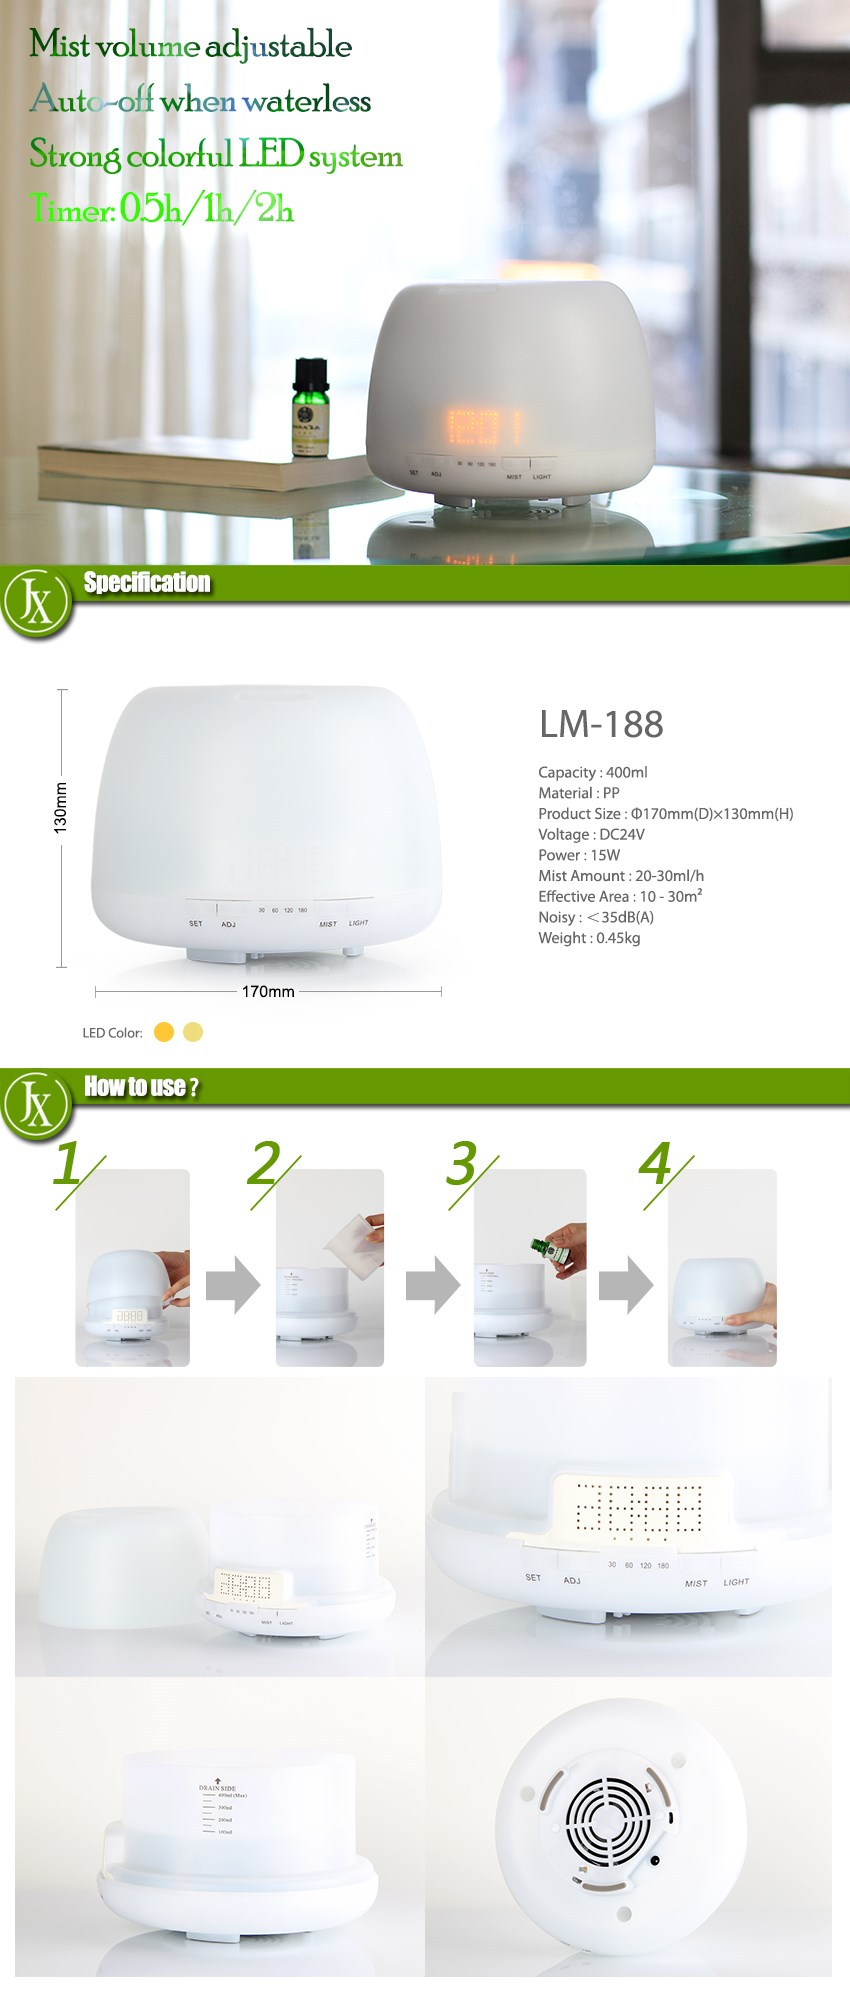 JX DIFFUSER electric air freshener aromatherapy diffuser electric ultrasonic aroma diffuser with alarm and clock&timer